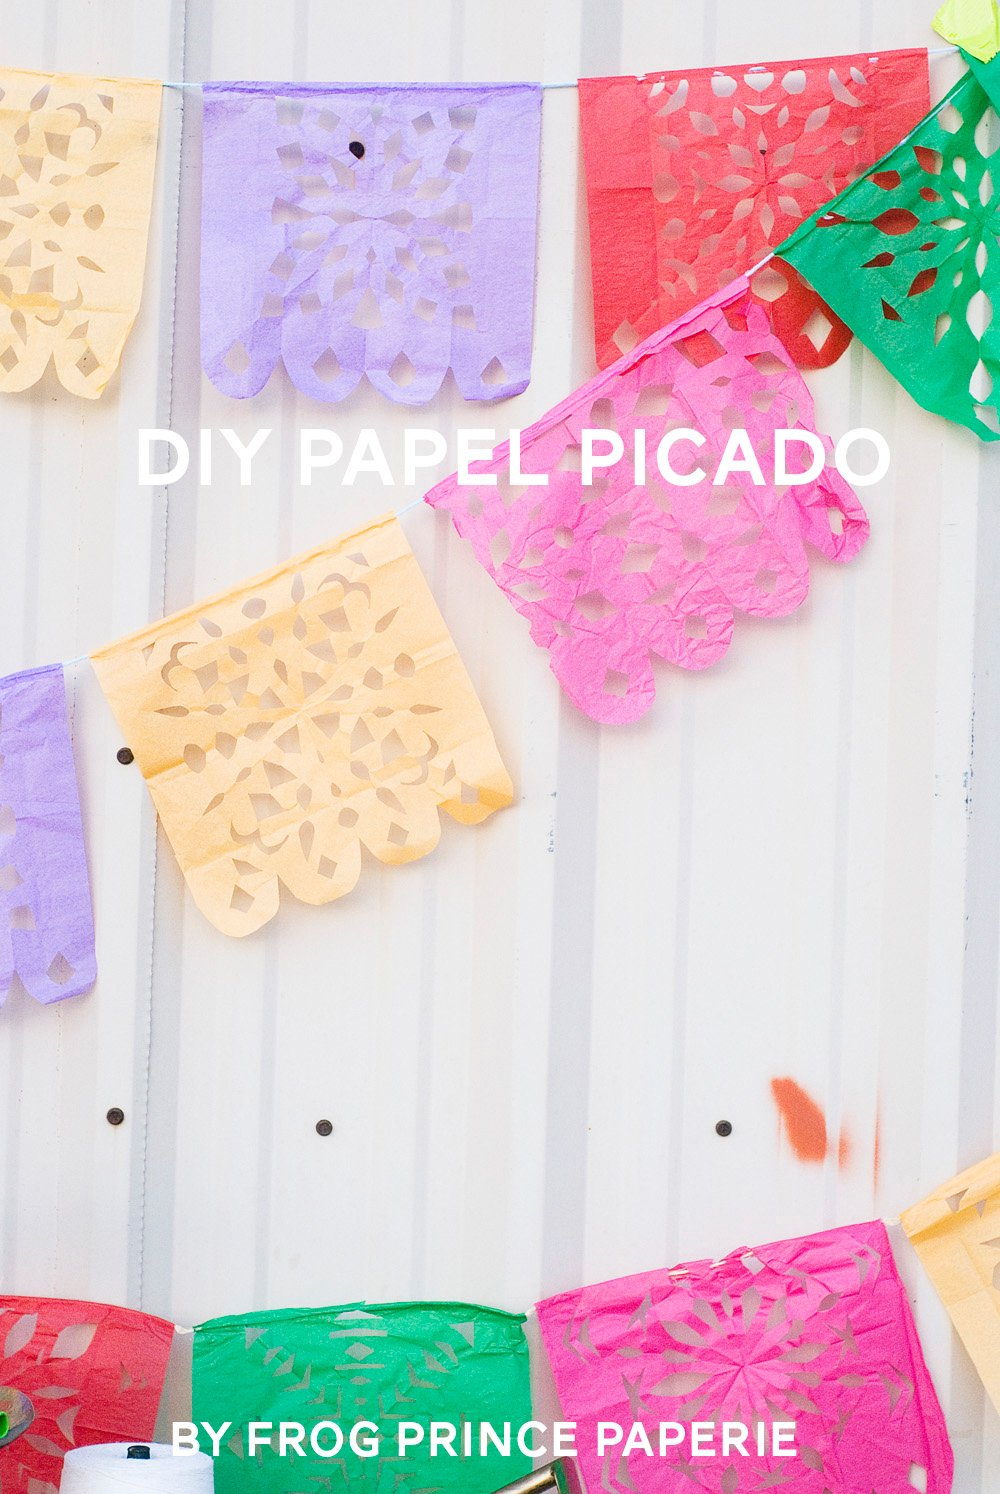 DIY Papel Picado by Paula Biggs